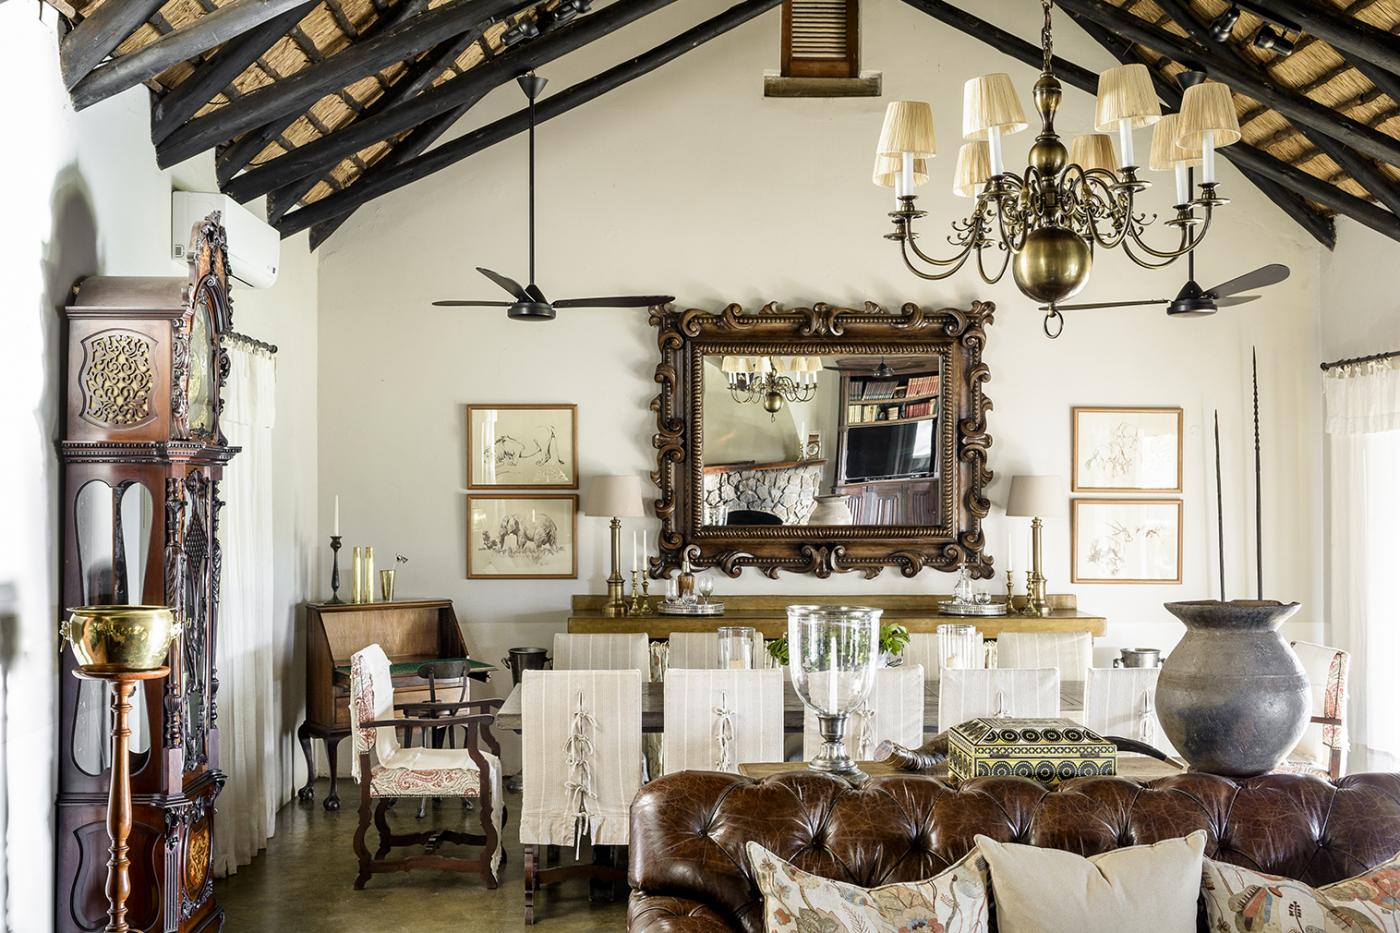 The interior of this stunning resort in South Africa reflects the natural landscape perfectly.